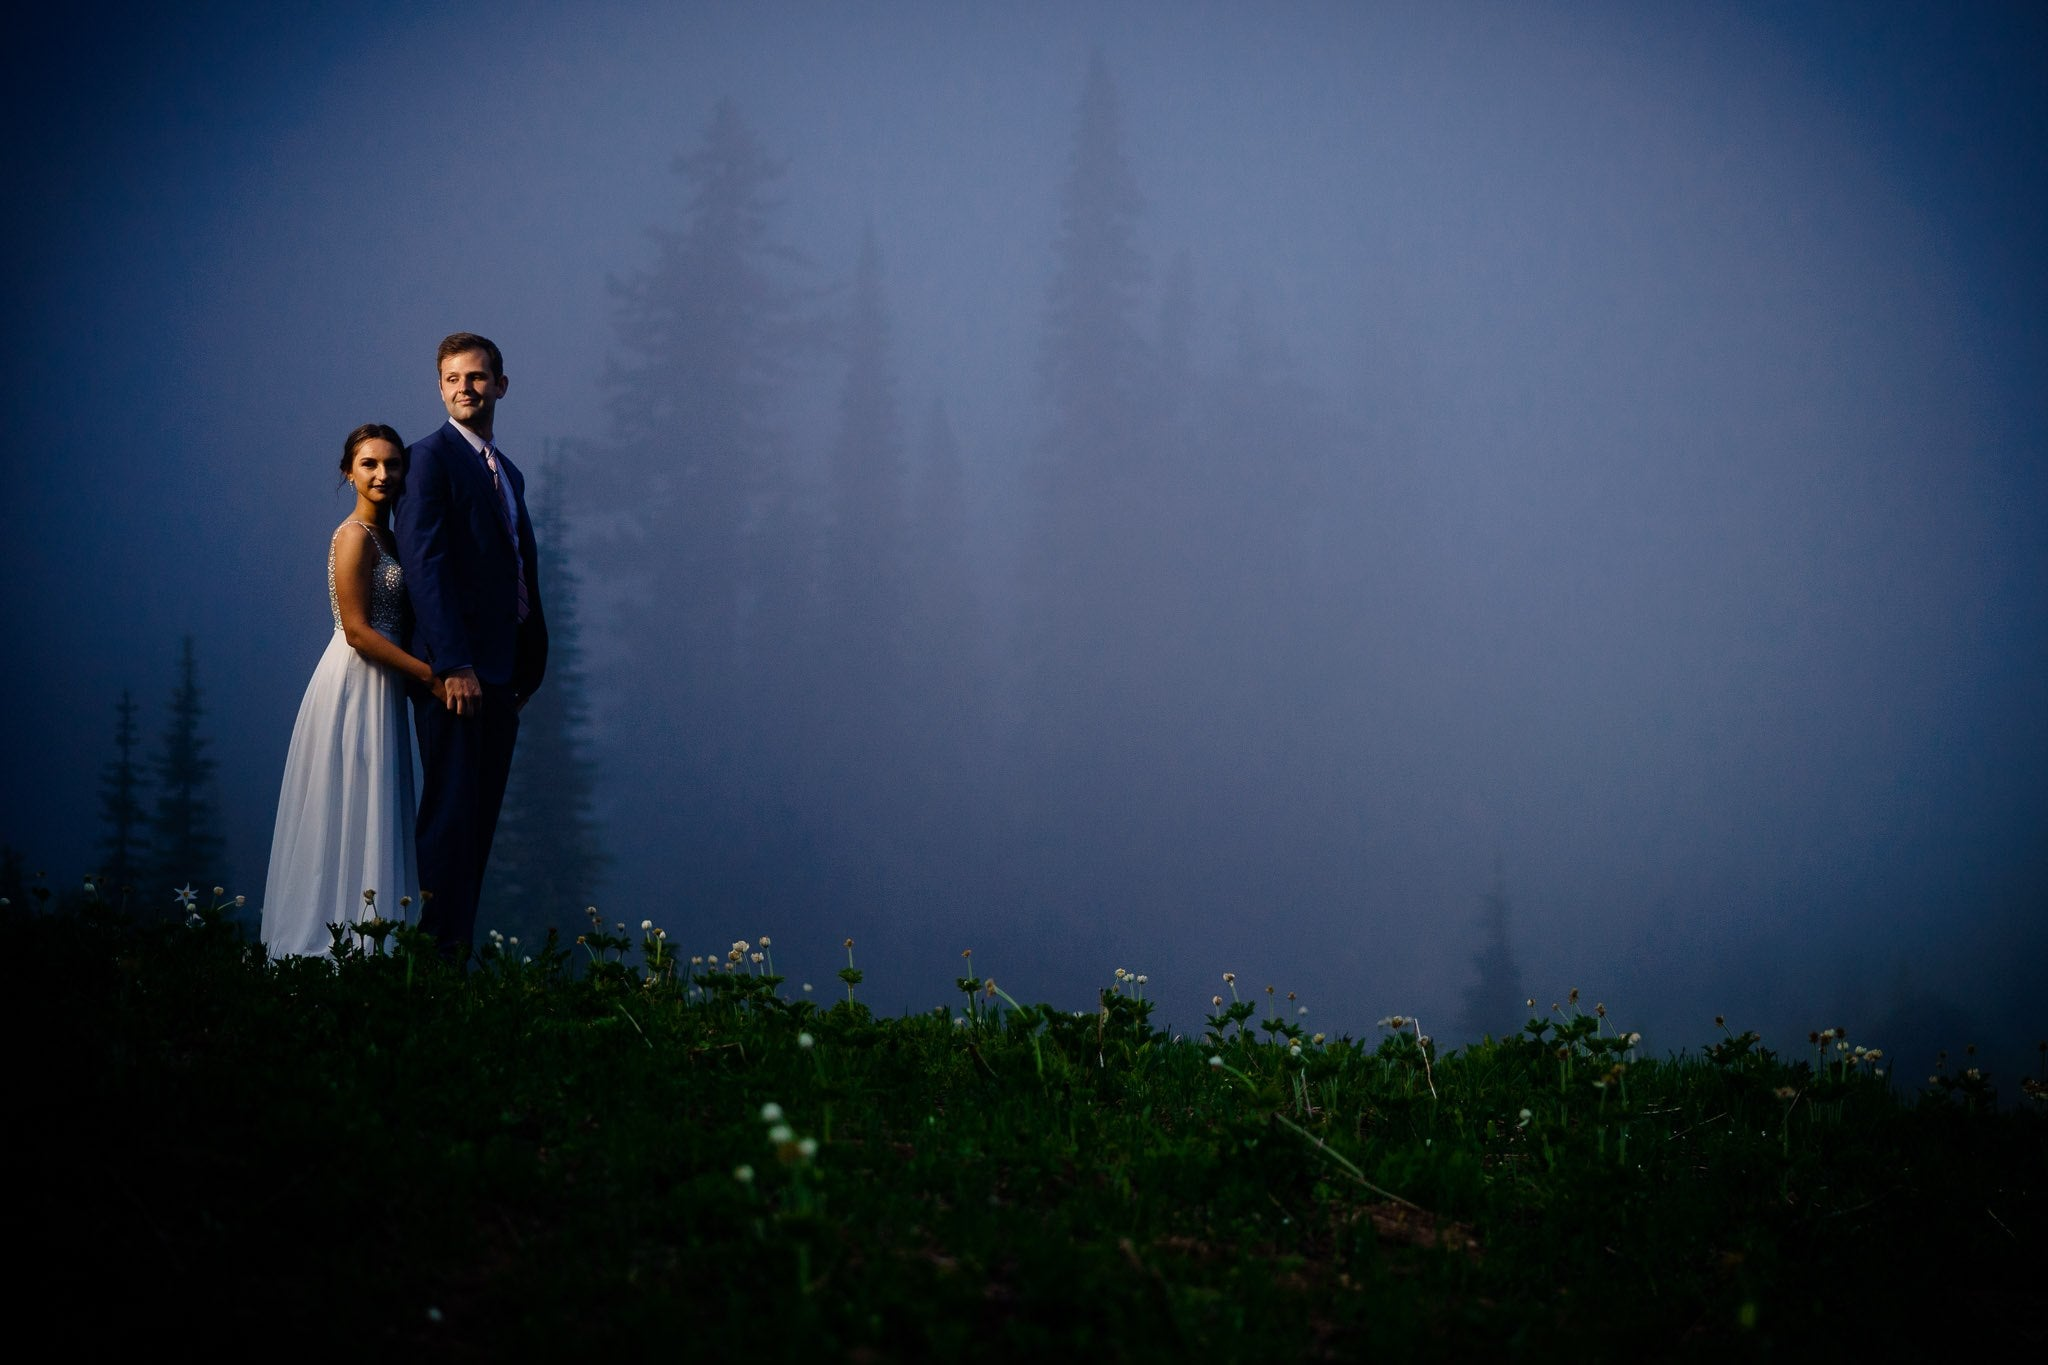 Bride and groom posing in a dark and moody outdoor setting